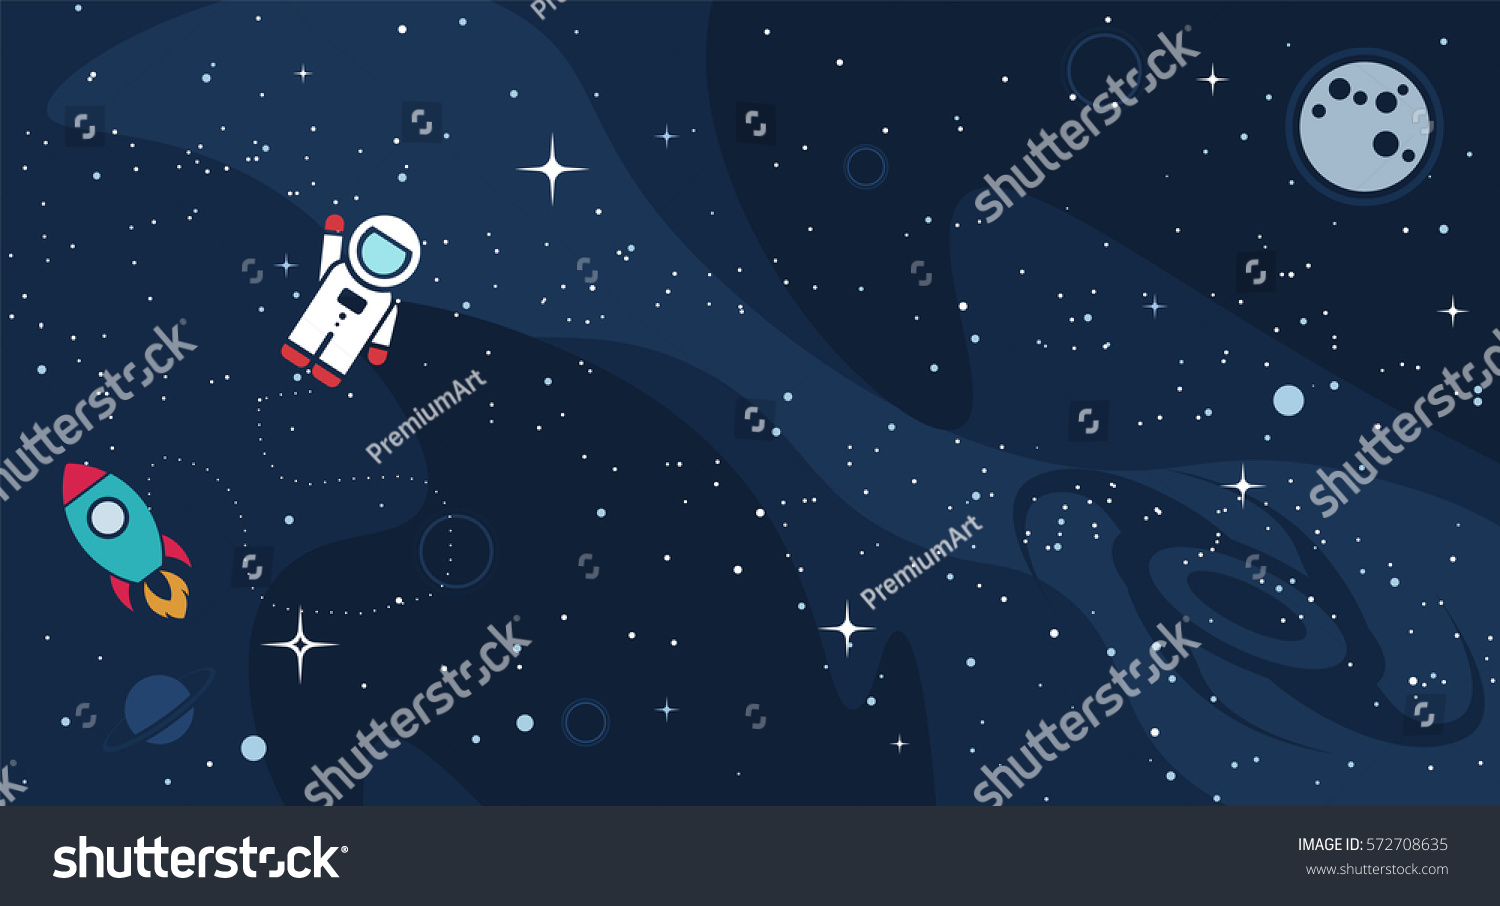 Vector flat space design background text stock vector for Outer space planning and design